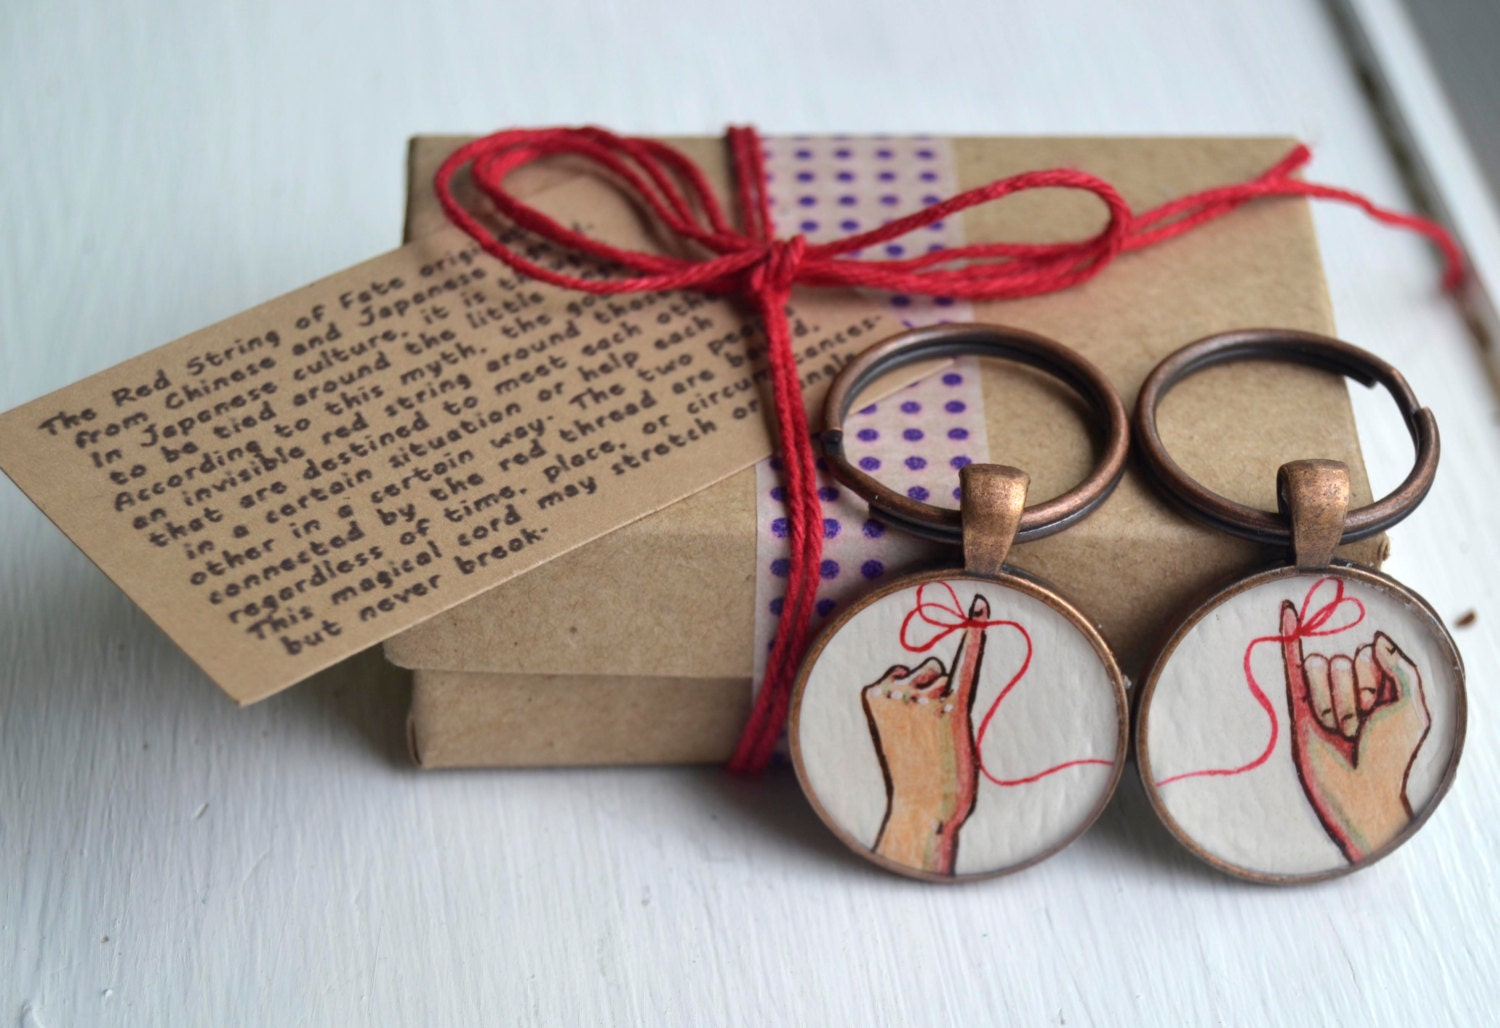 best friend key chain set red string of fate hand painted